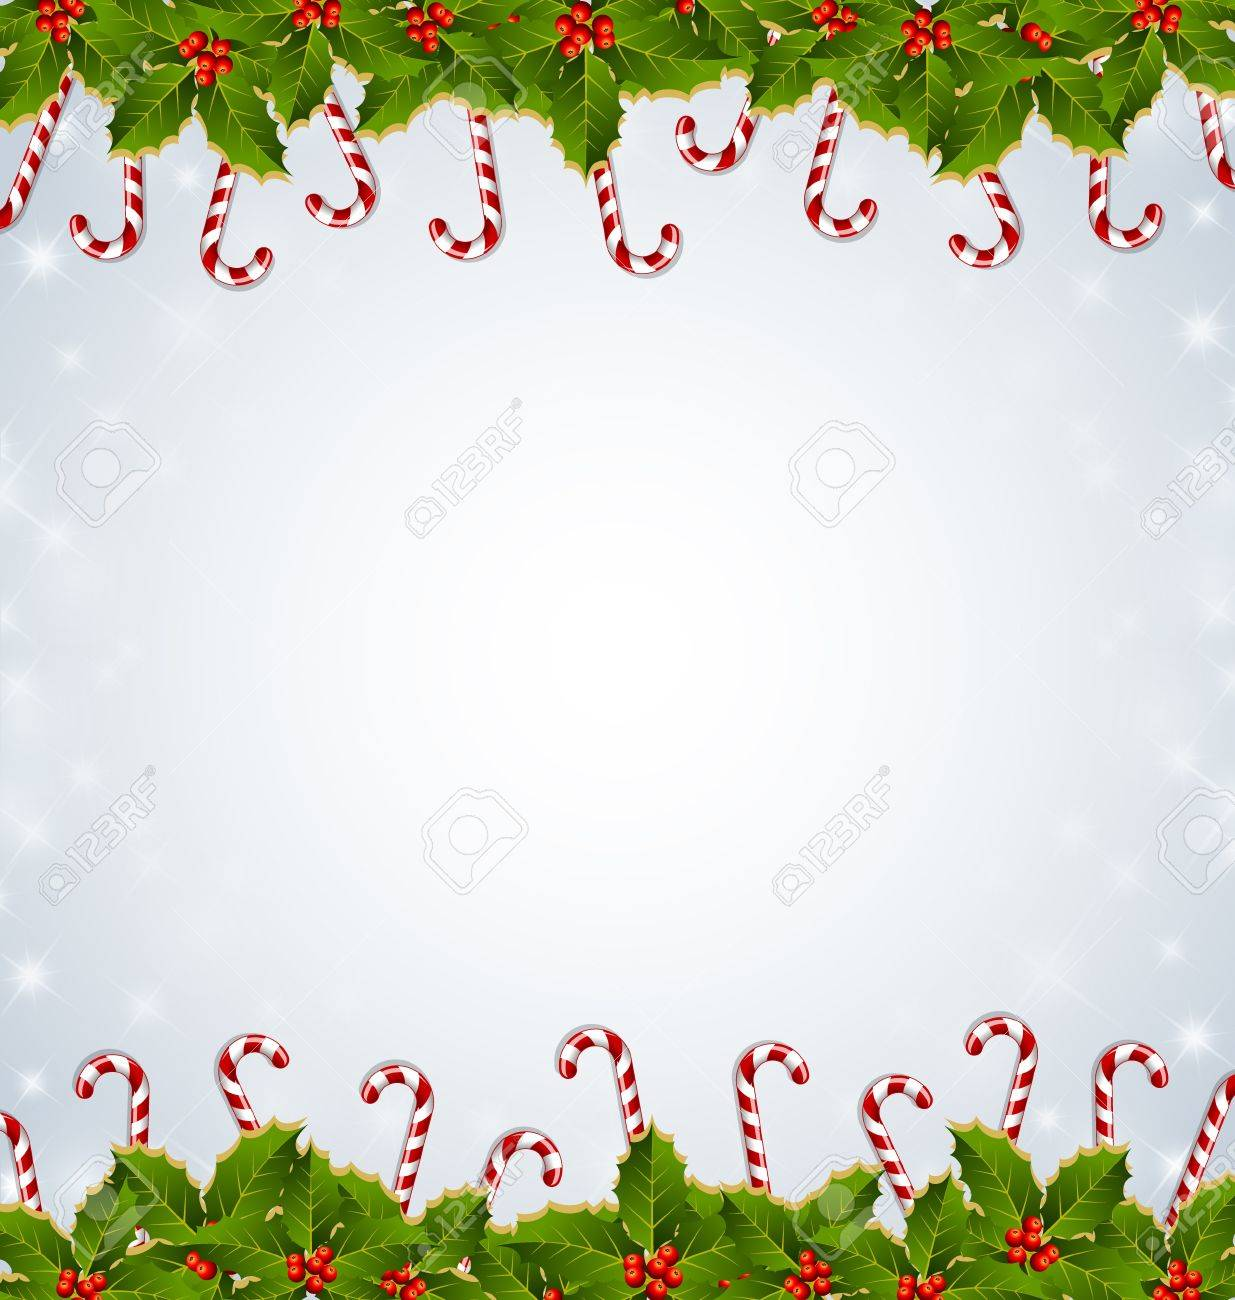 Why is holly a traditional christmas decoration - Holly And Candy Canes Traditional Christmas Decoration On Starry Background Stock Vector 15998669